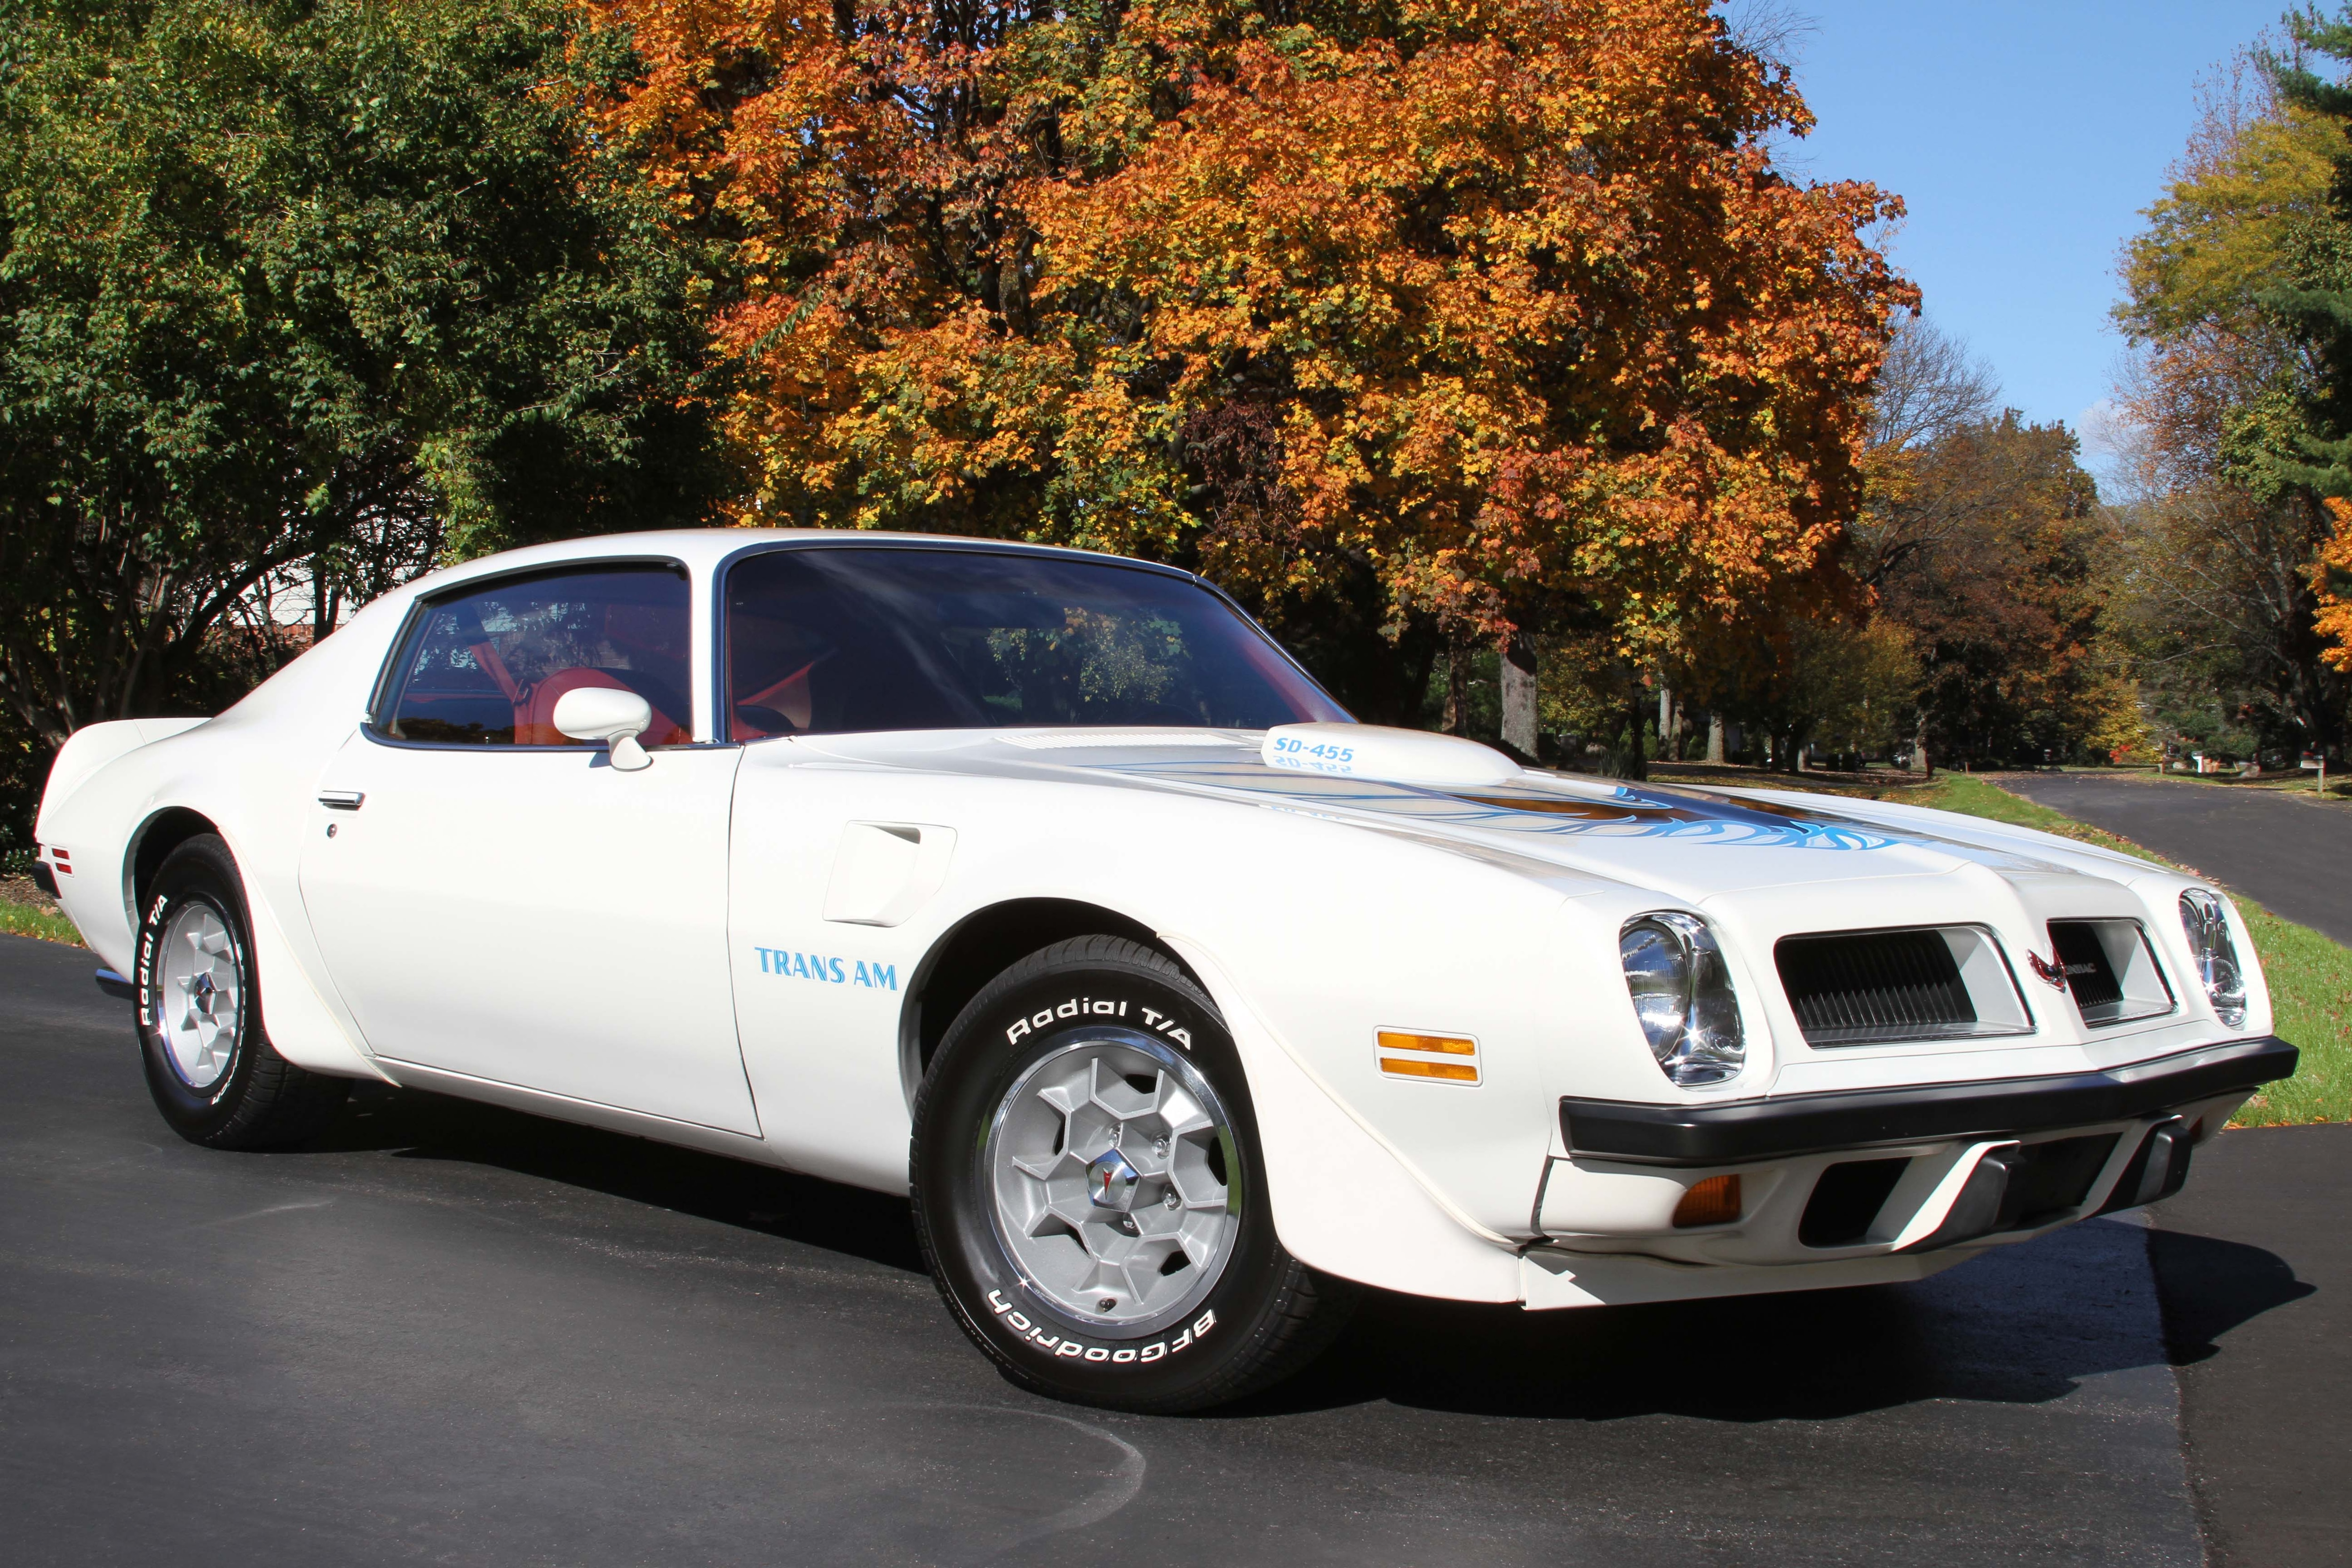 Pontiac Trans Am SD 455 Did Pontiac Save Its Best Muscle